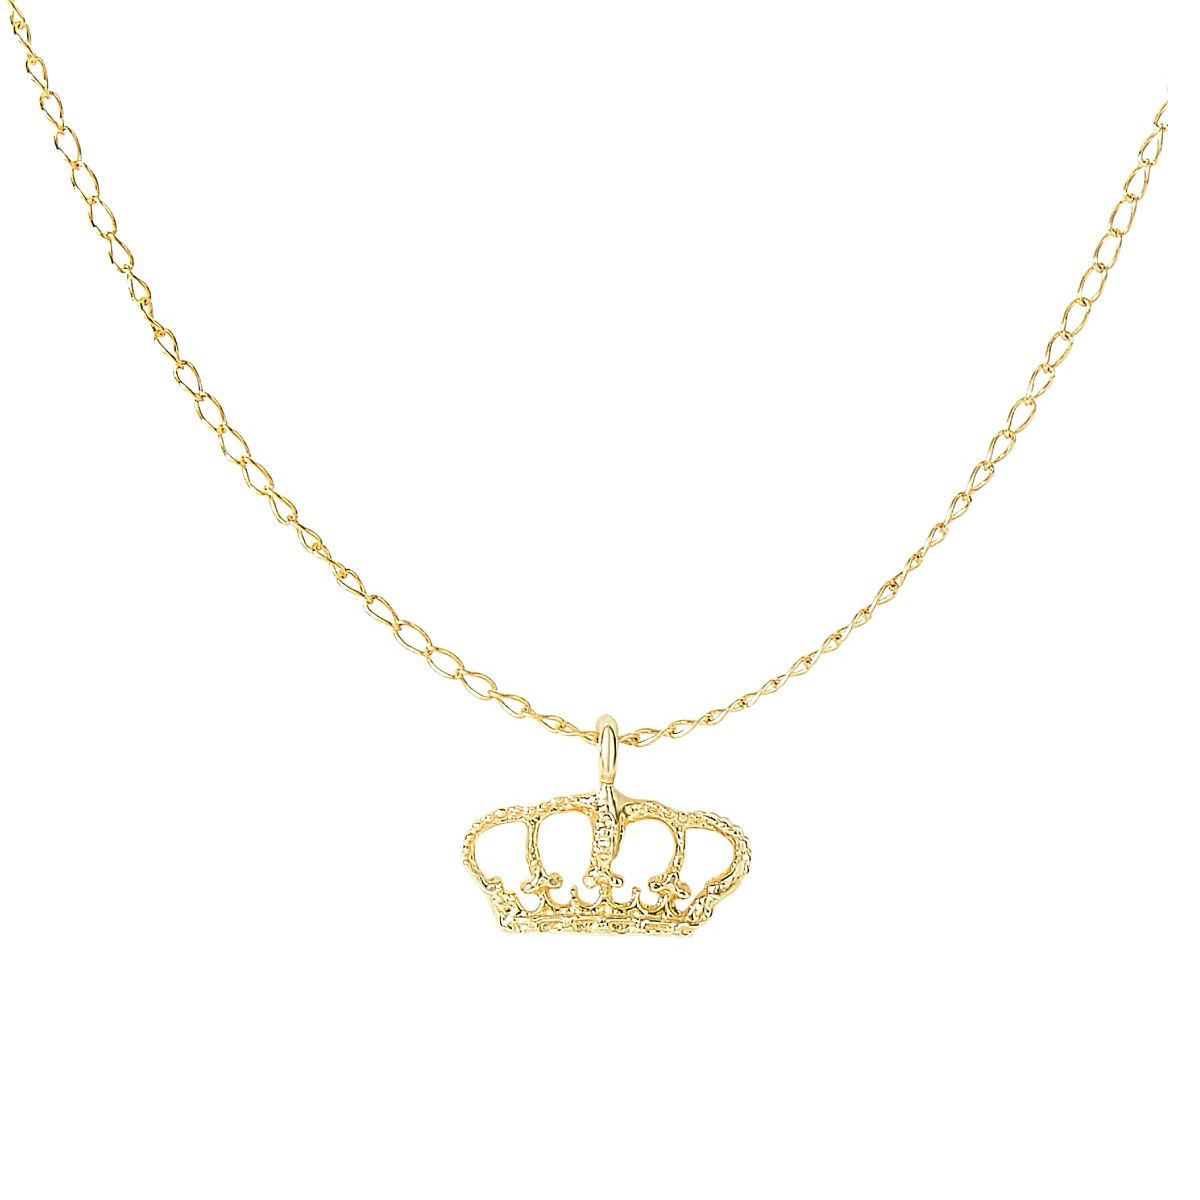 pav gold jewelry rose fine pendant product broome crown